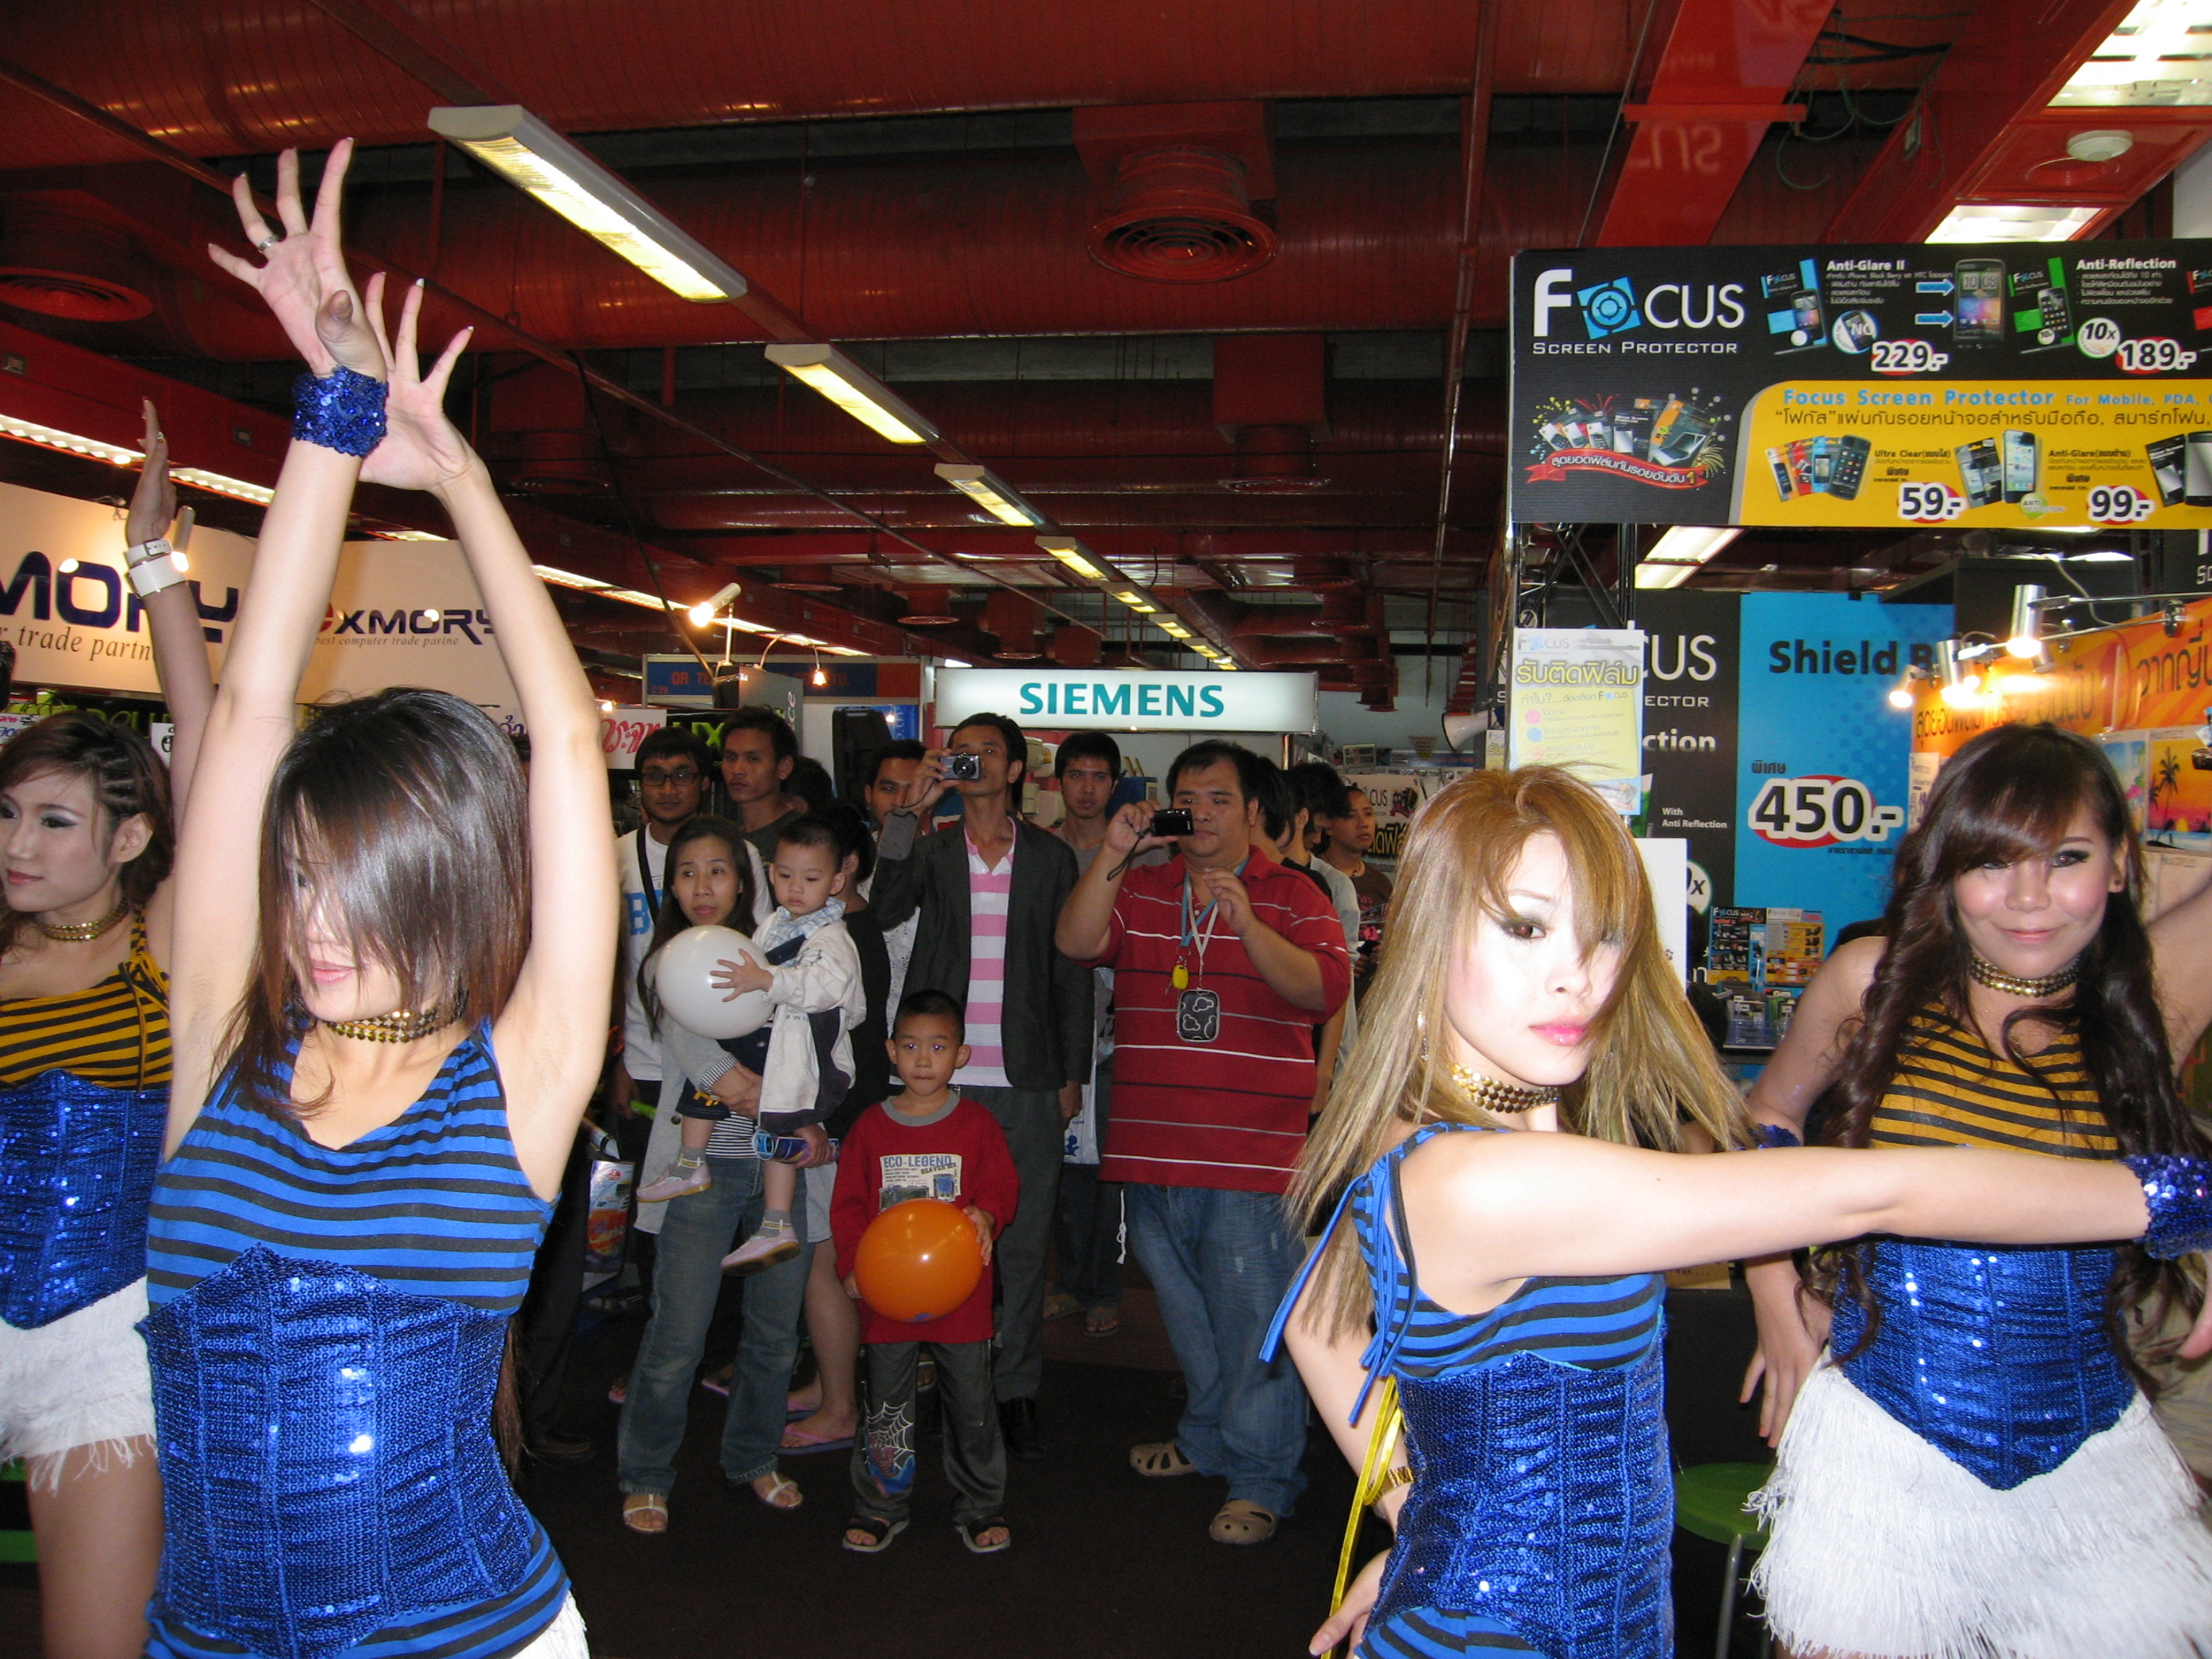 Dancing girls at computer fair